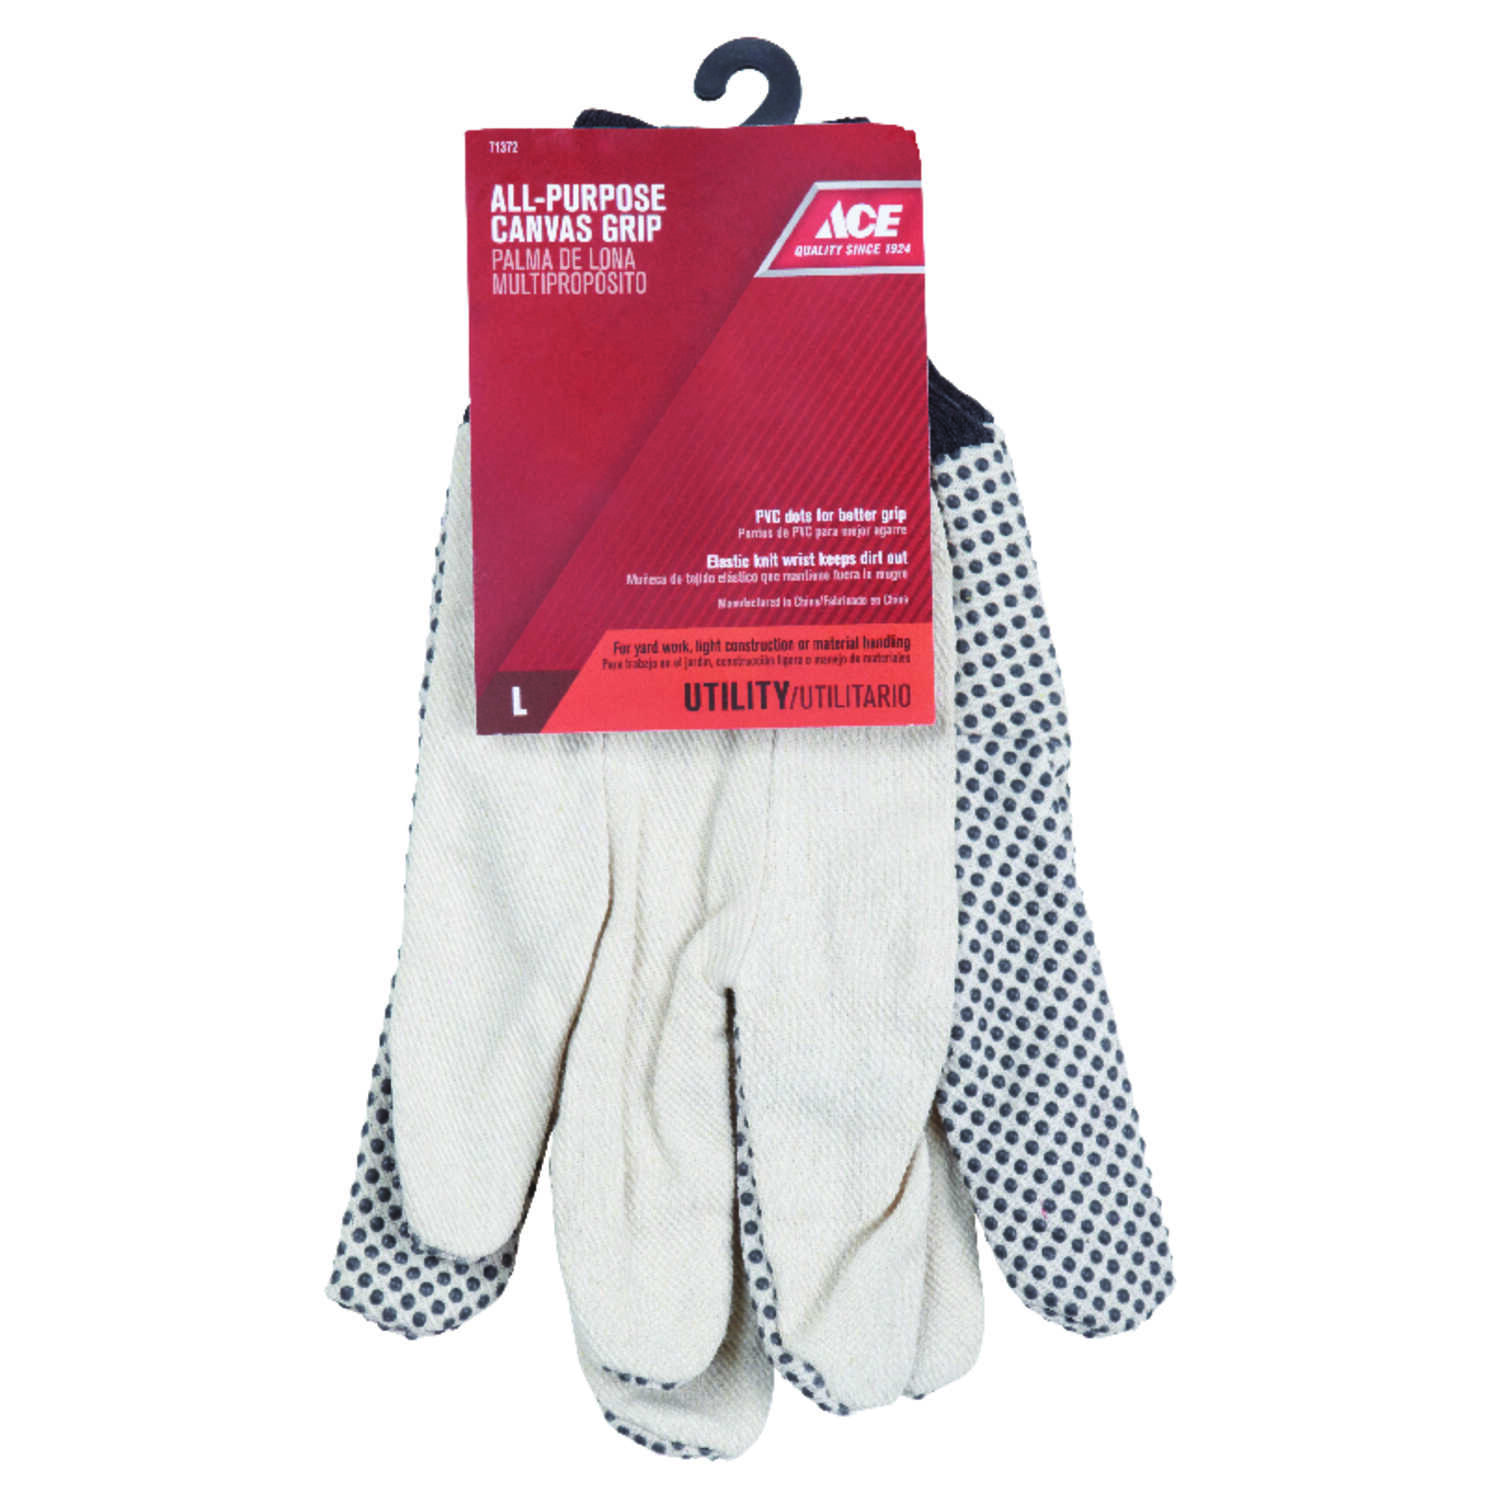 Ace  Men's  Indoor/Outdoor  Canvas  Dotted  Grip Gloves  White  L